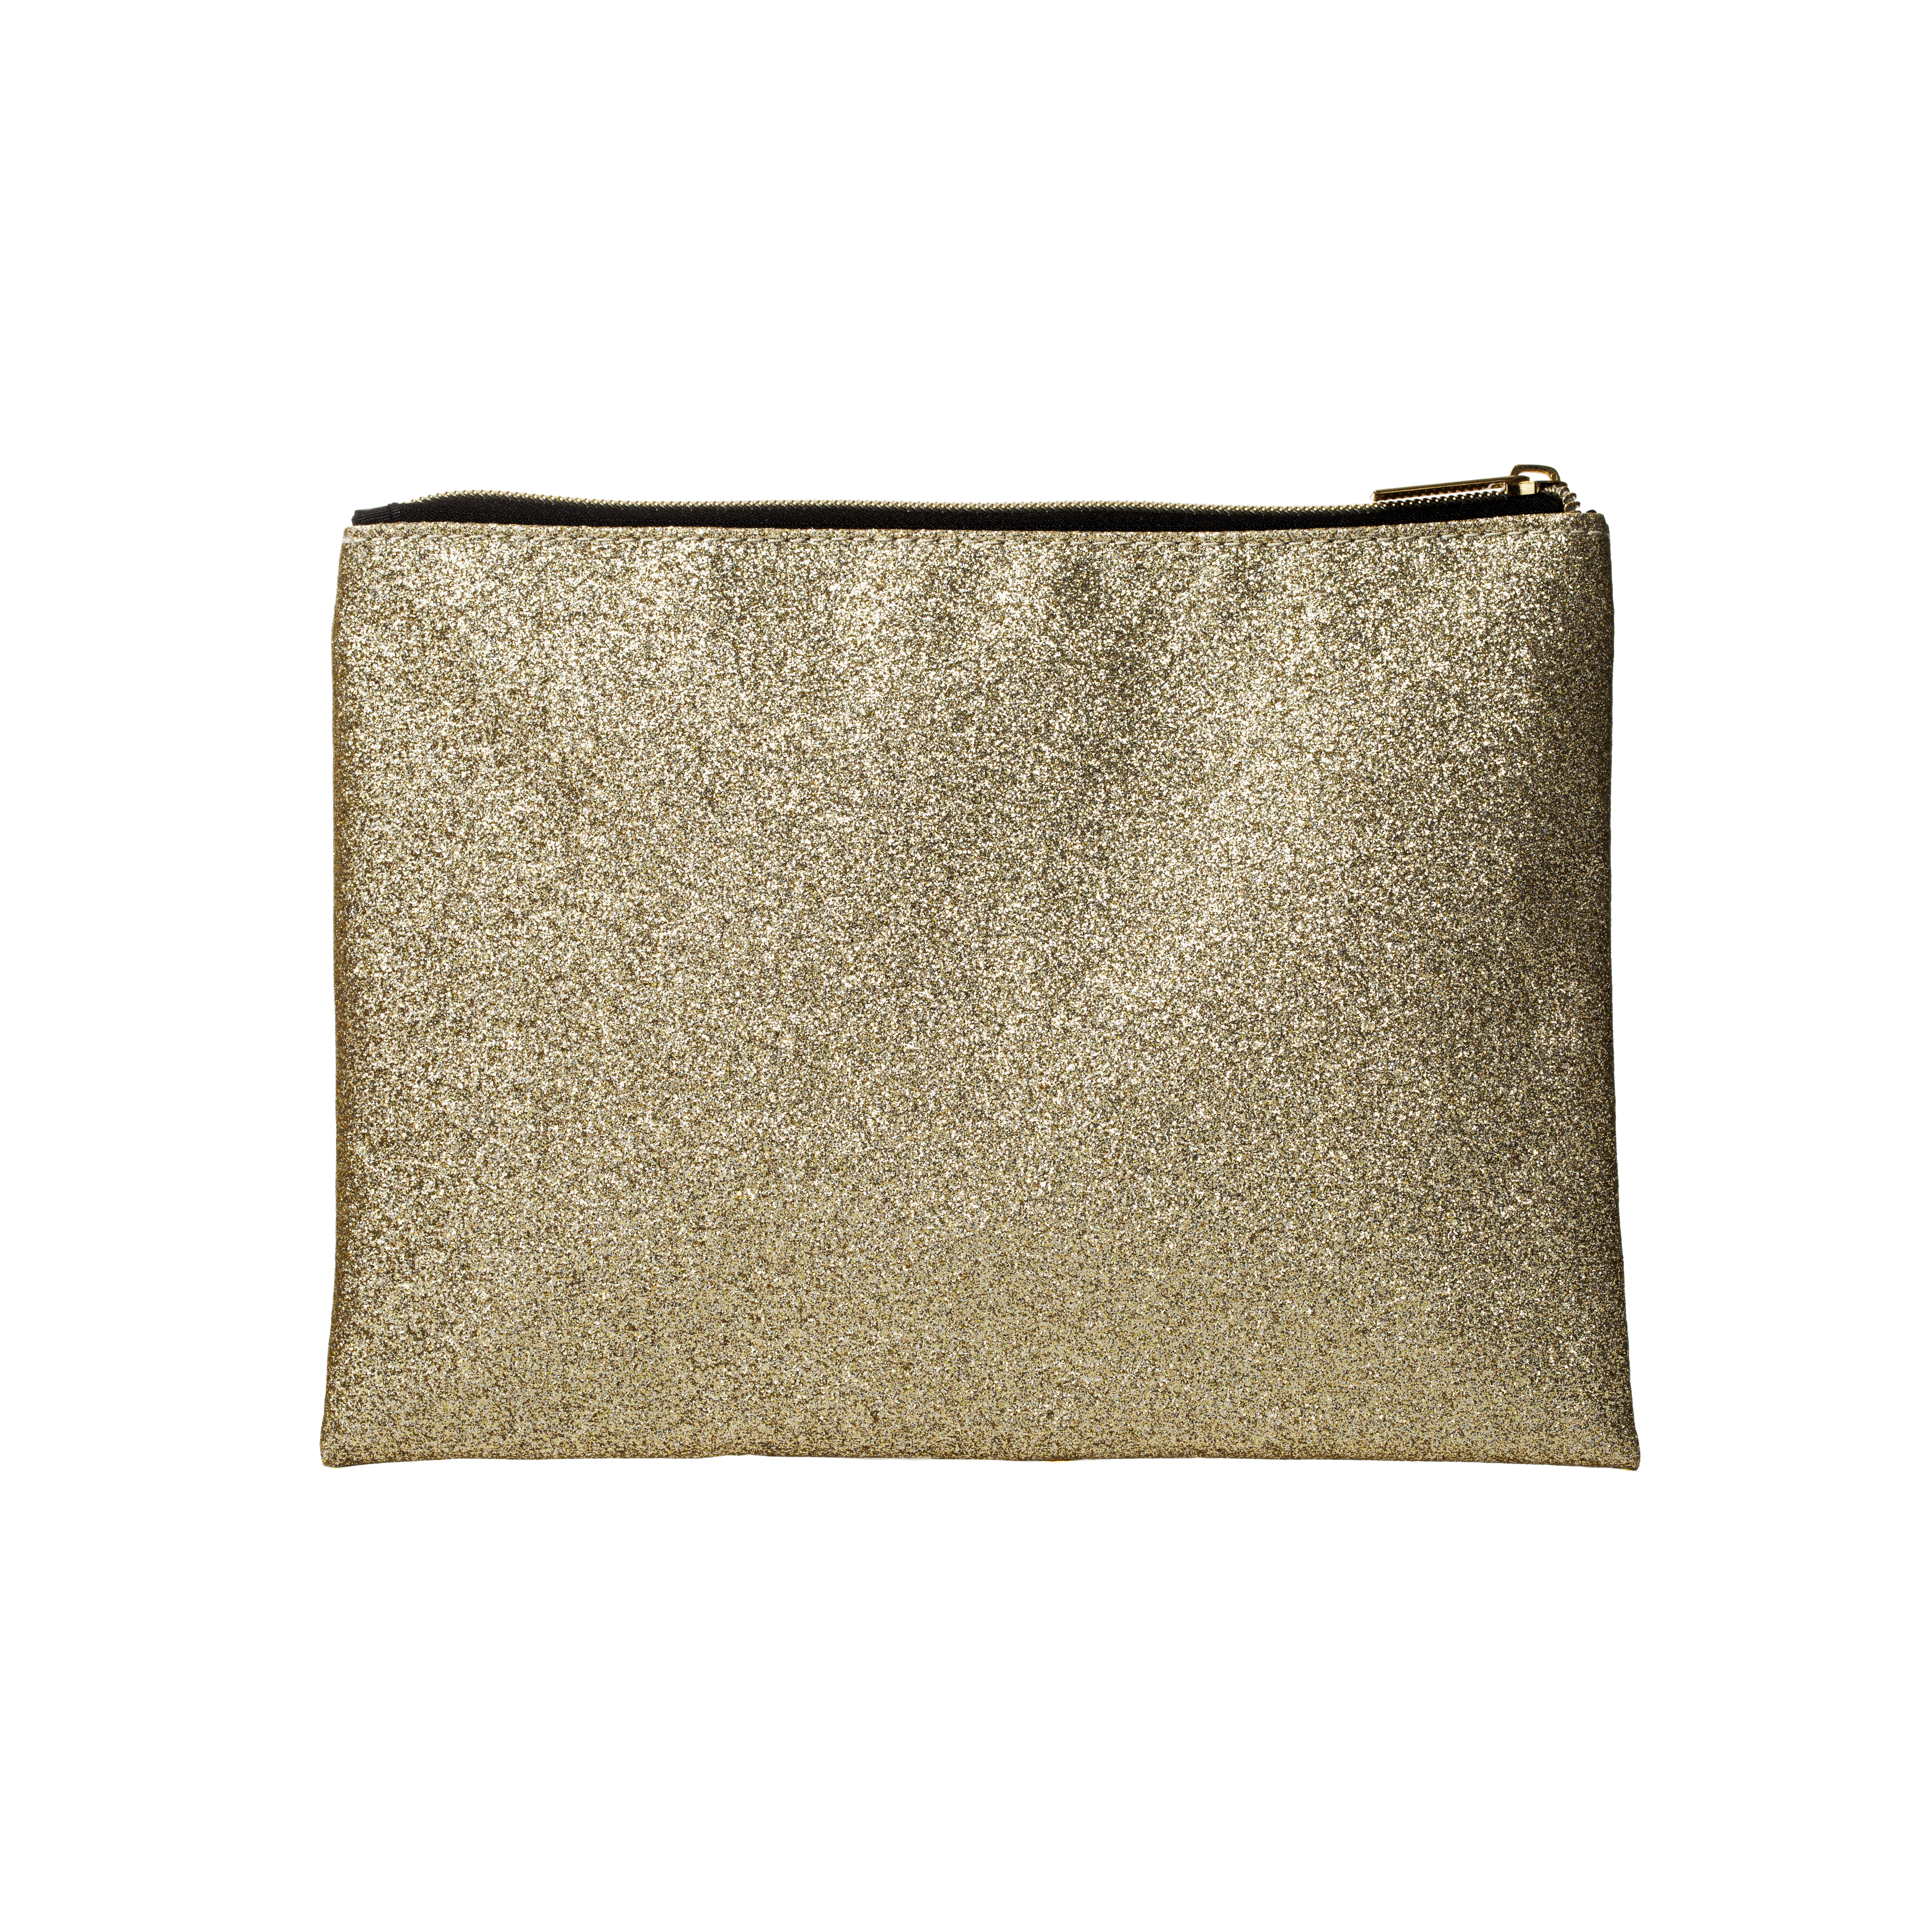 Makeup Bag Gold Glitter